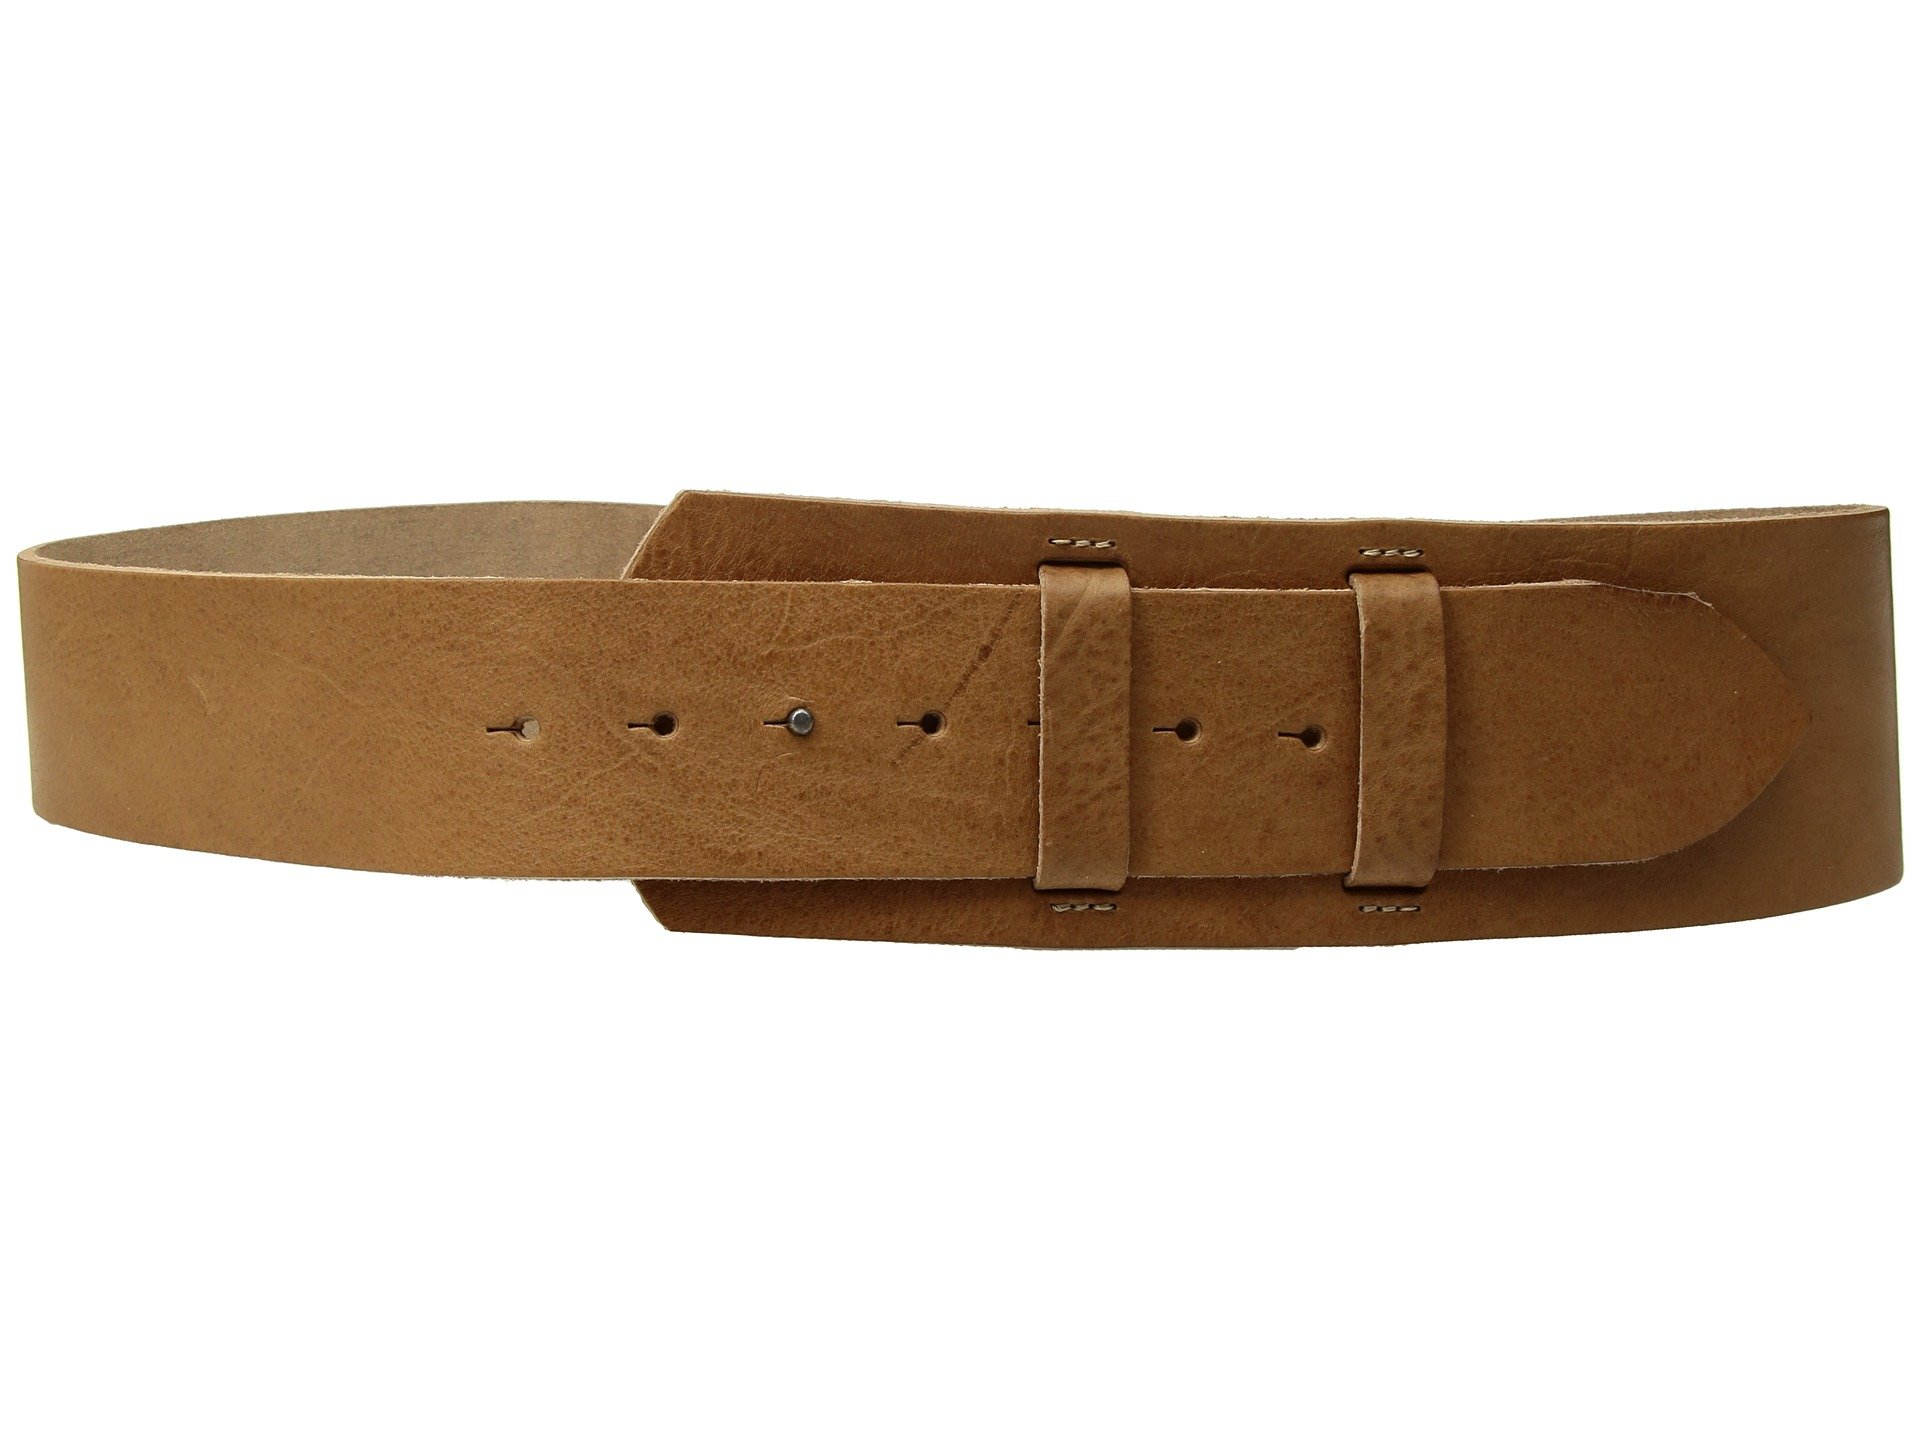 Amsterdam Heritage Leather Belt 80001 Wide Cinch Tan belt by Amsterdam Heritage